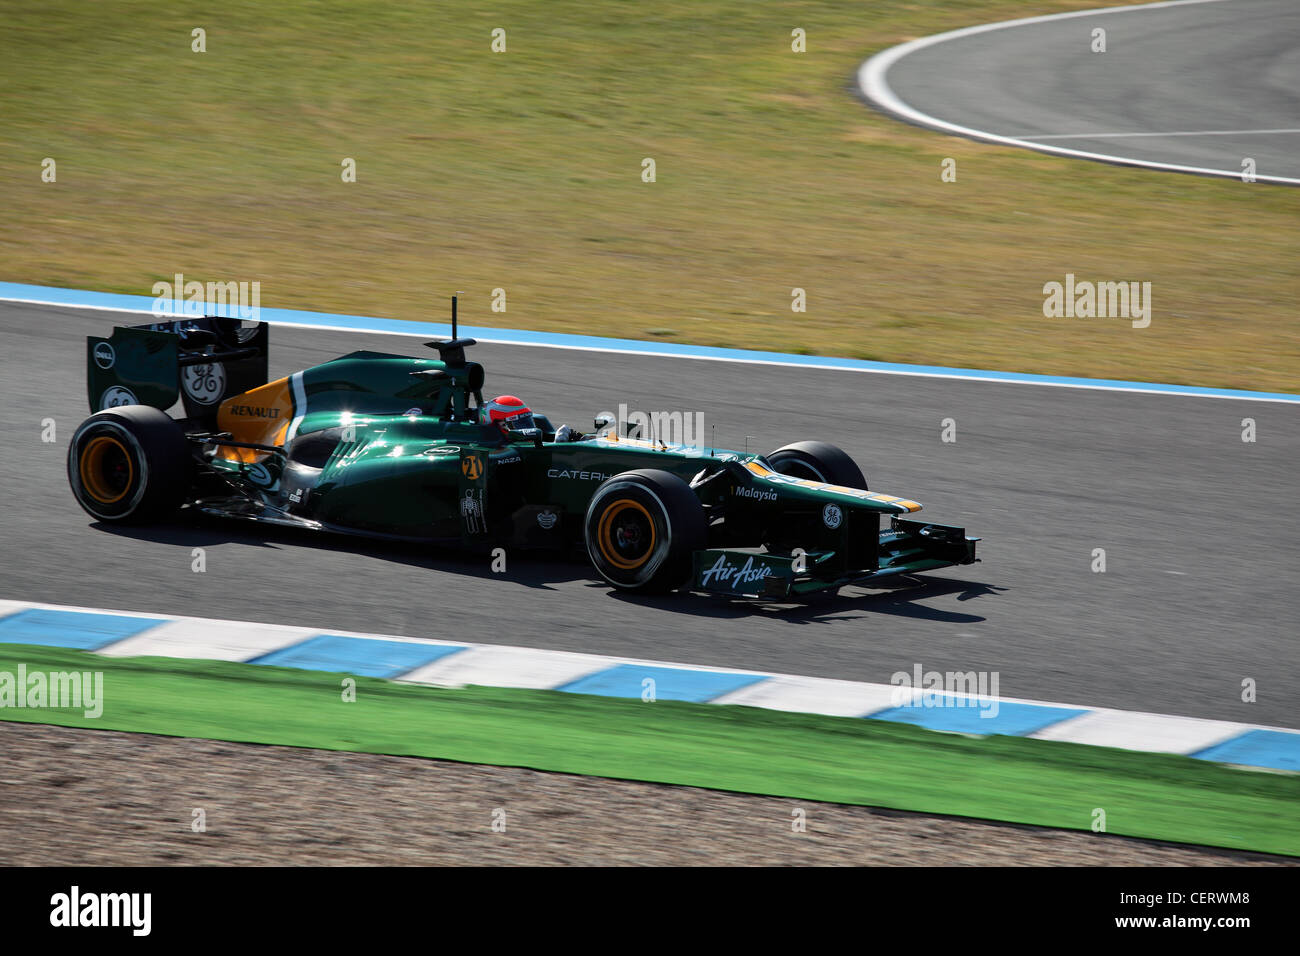 Jarno Trulli driving Caterham Formula one racing car during track testing at Jerez Andalucia Spain - Stock Image